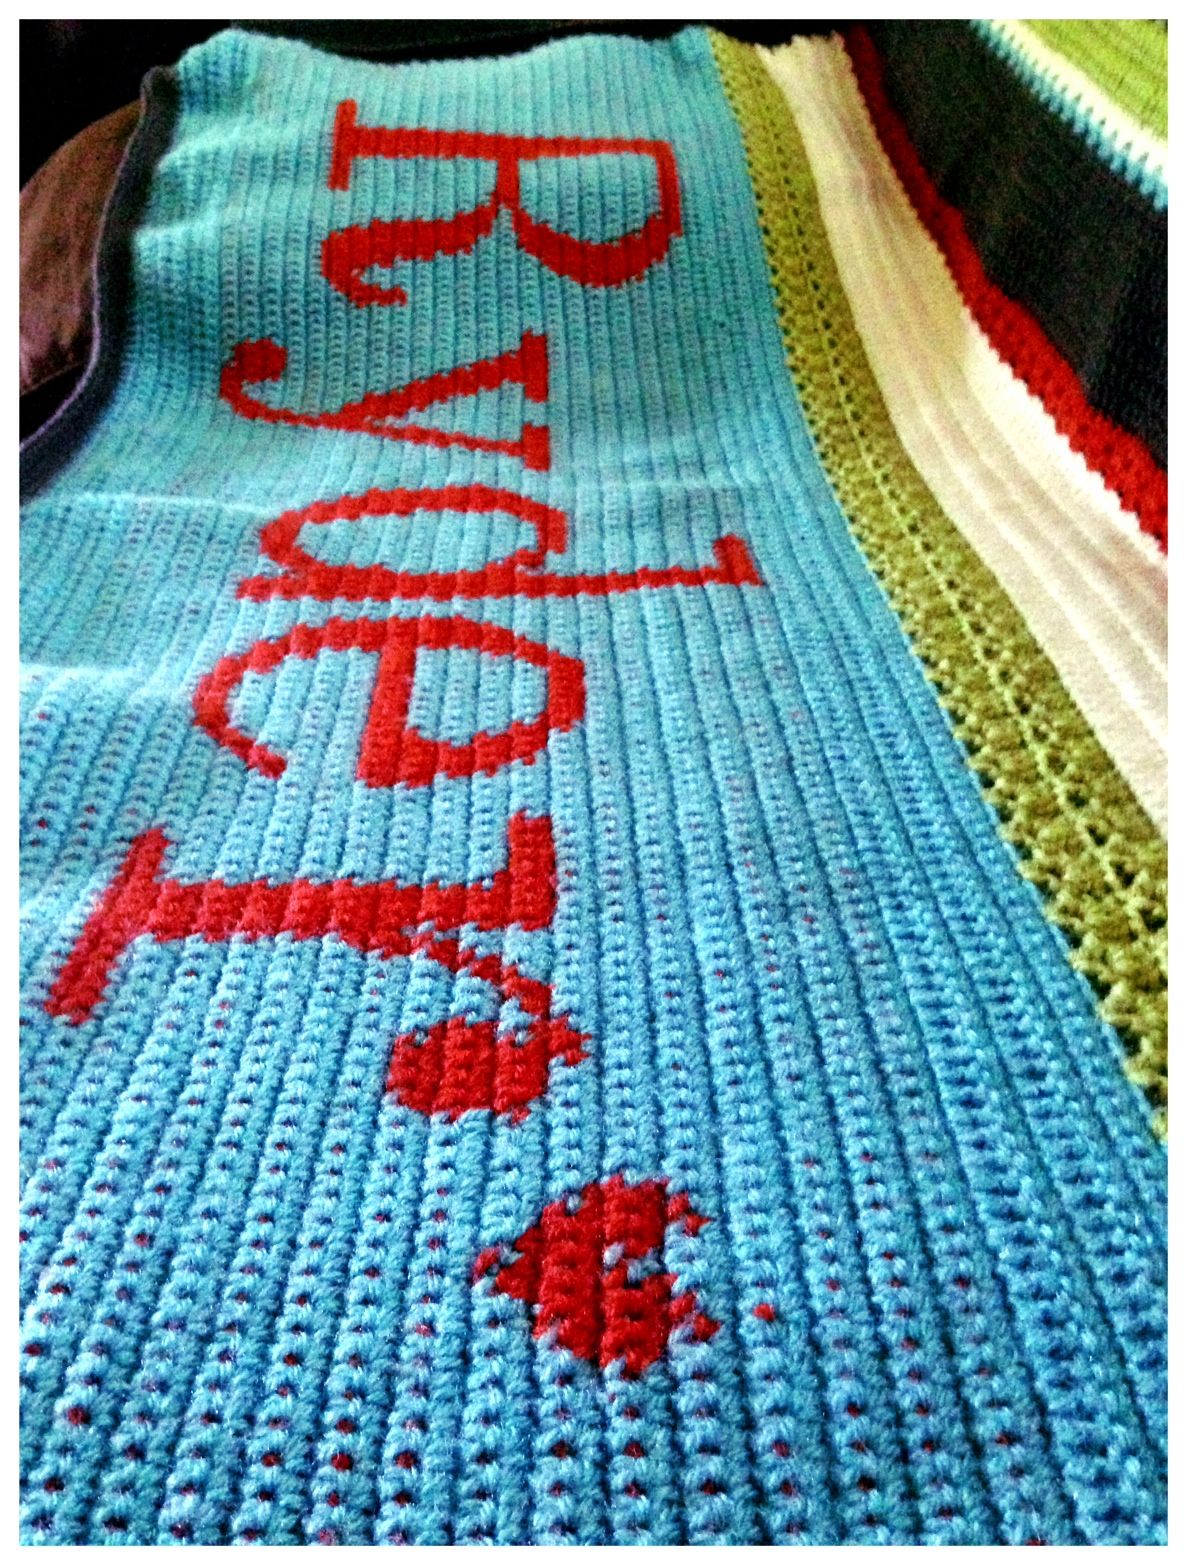 boy baby blanket crochet patterns with name | Using a US H8/5.0mm hook I crocheted the blanket using Lion Brand Yarn ...